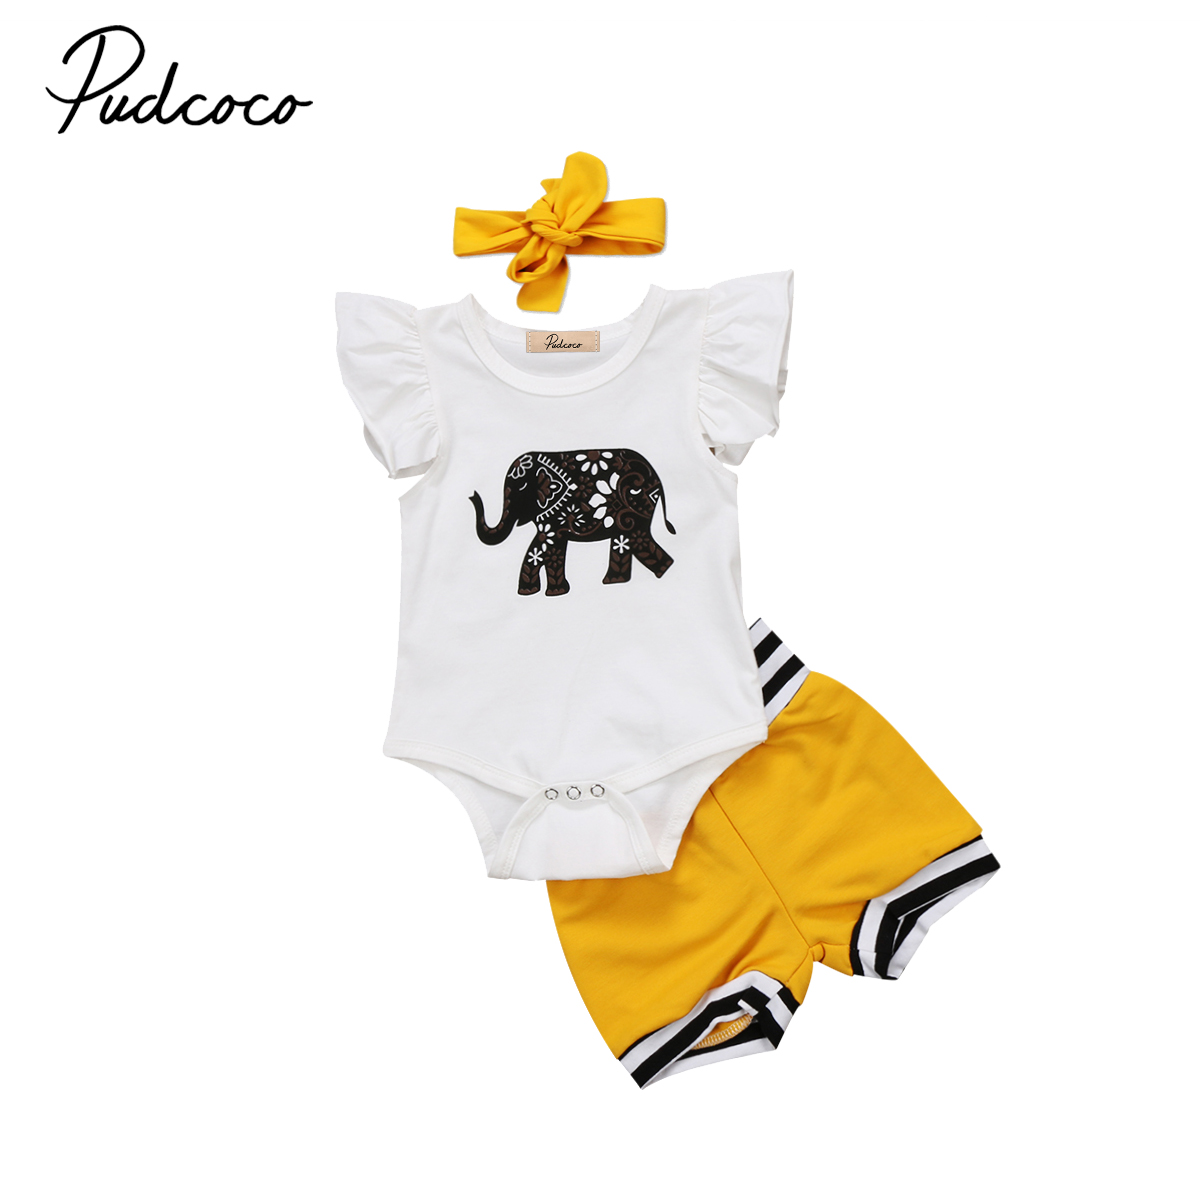 Babies Summer Elephant Printing Clothing Set Newborn Infant Baby Girls Bodysuit Tops Shorts Bottoms Outfits Set Clothes